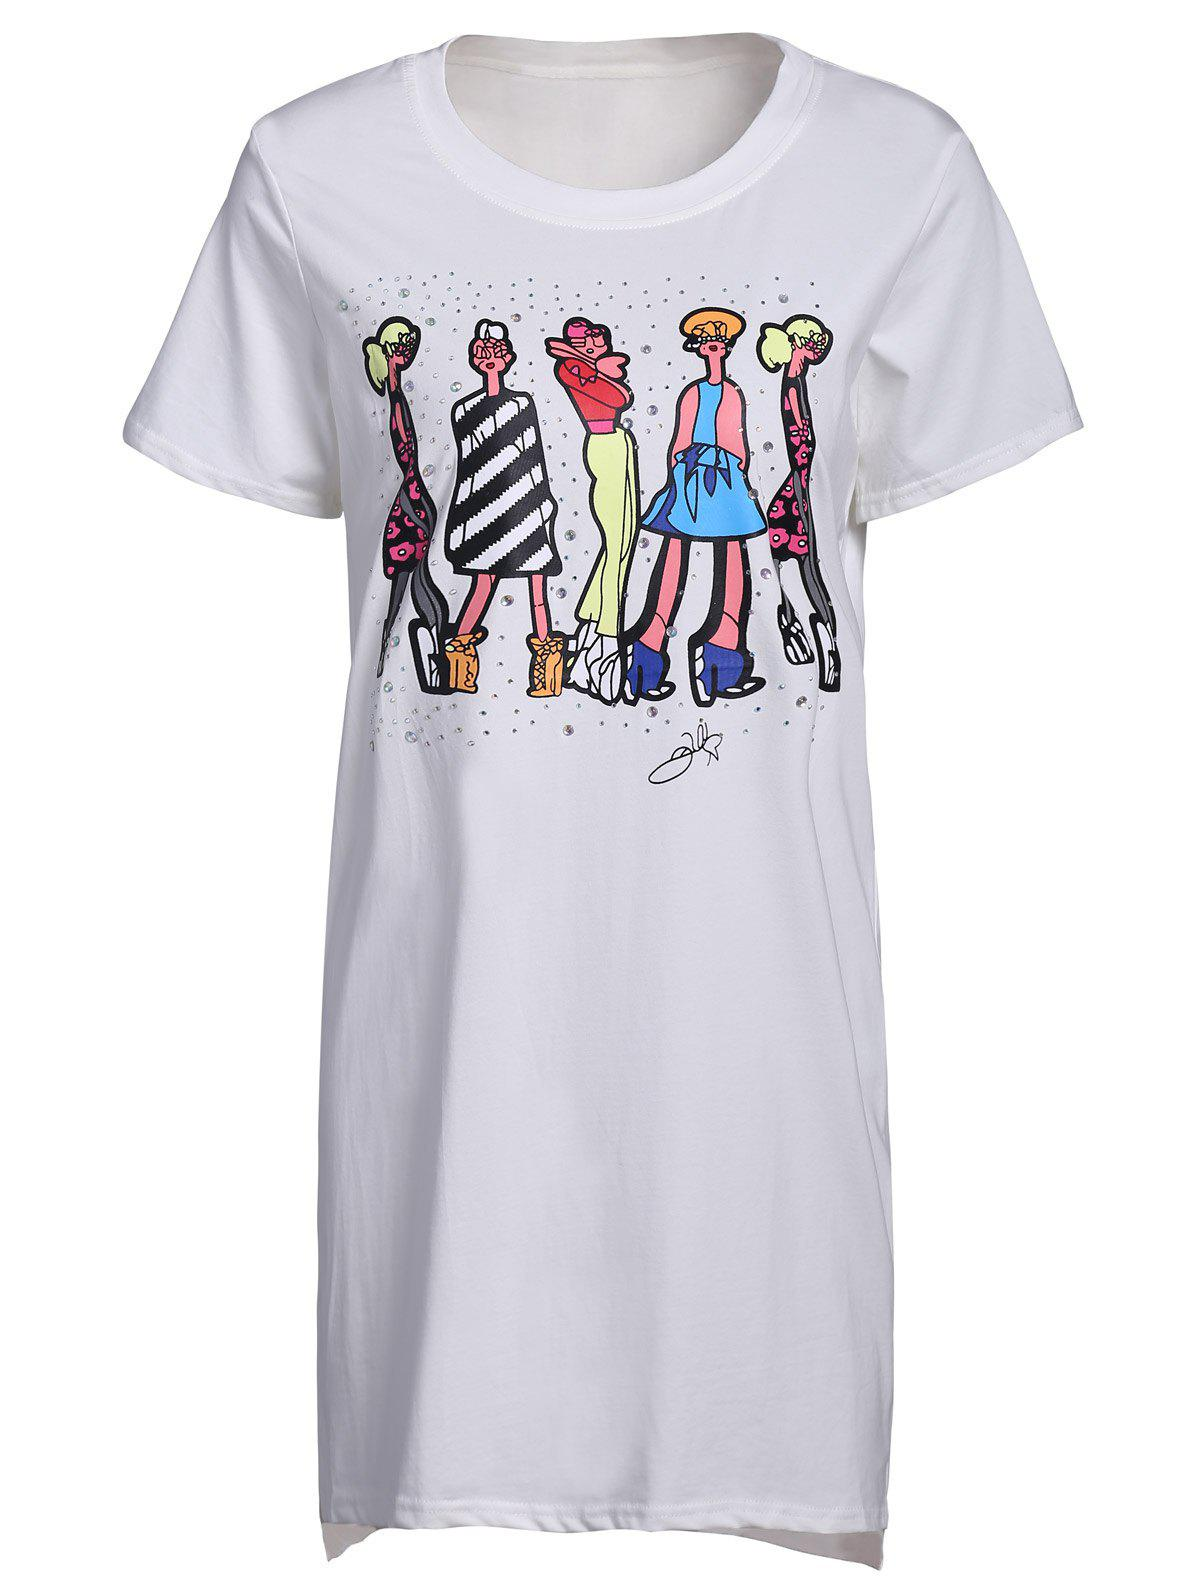 Cute Women's Round Neck Short Sleeve Cartoon Print Long T-Shirt - WHITE 2XL